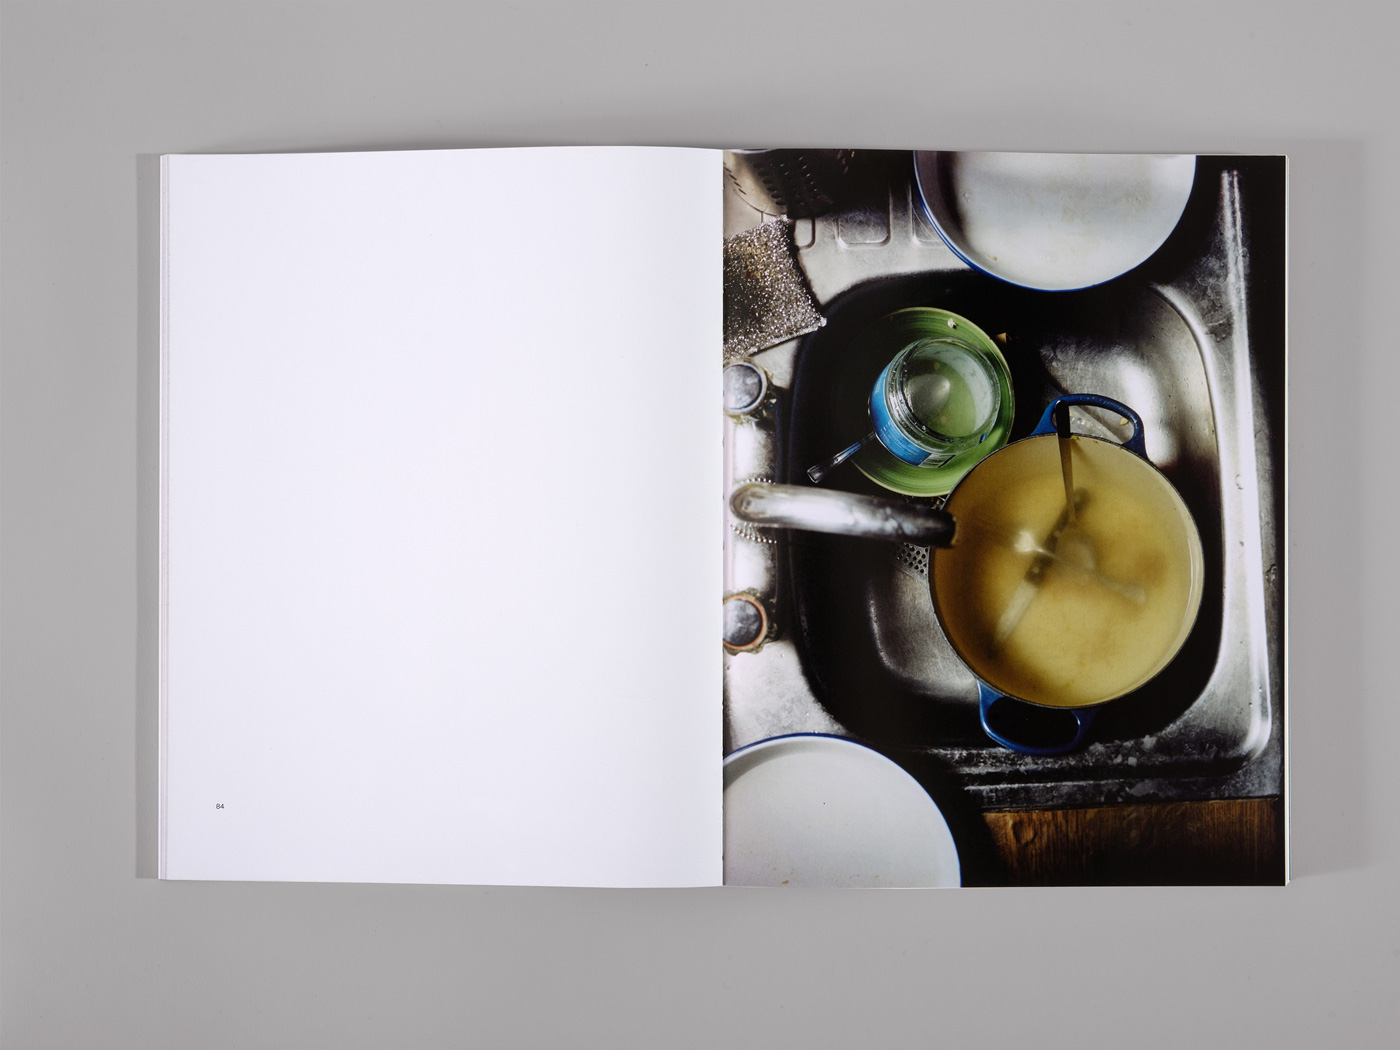 11 collide24 samepaper - The book Still Life, published by Same Paper and designed by Han Gao, invites thirteen photographers to reflect on the medium in times of the pandemic